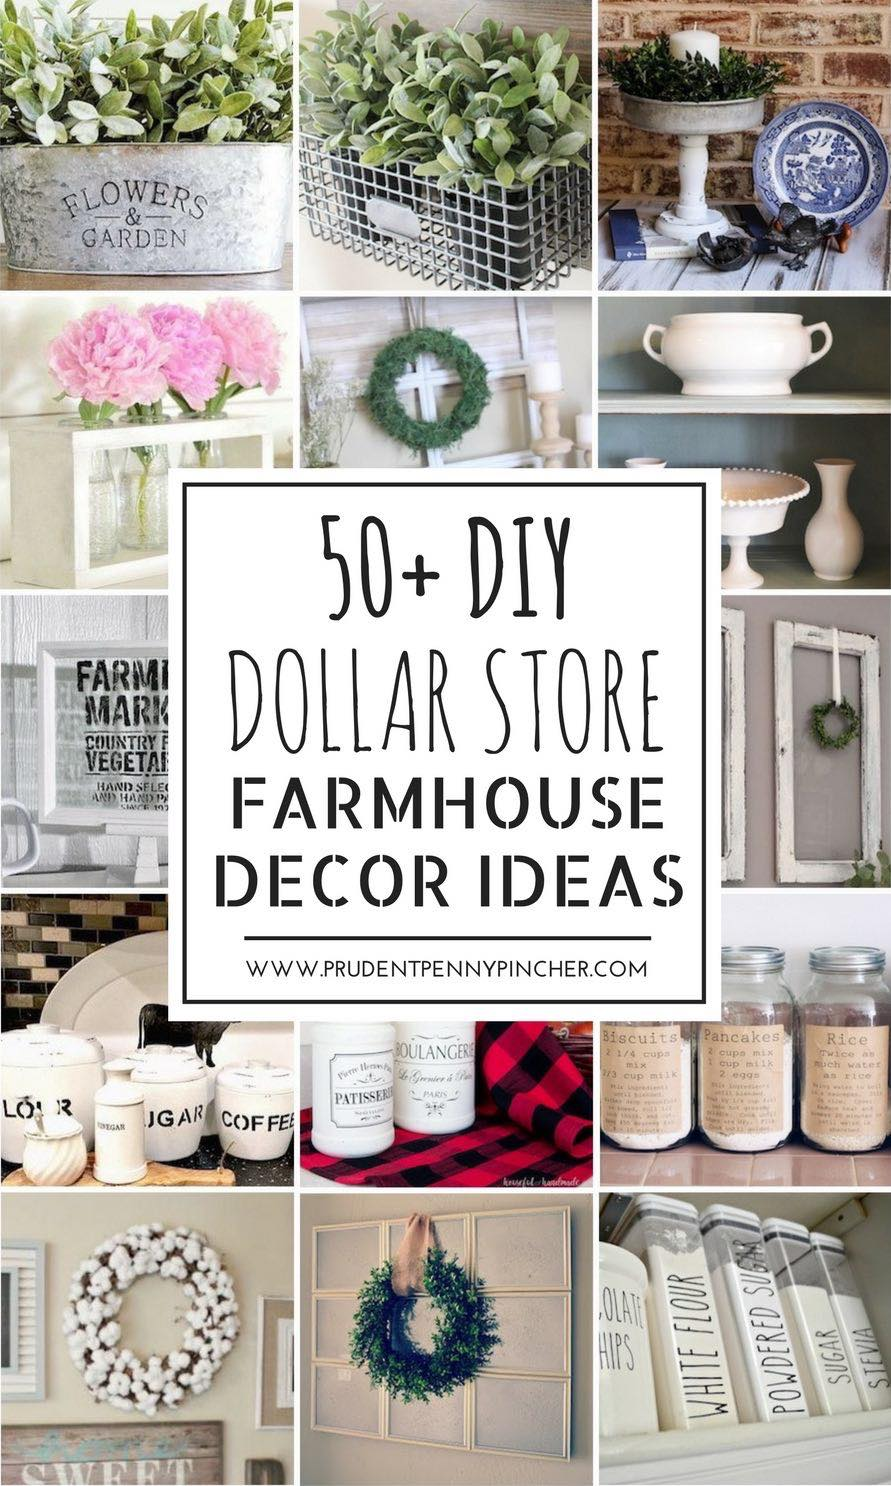 50 Dollar Store DIY Farmhouse Decor Ideas - Prudent Penny Pincher